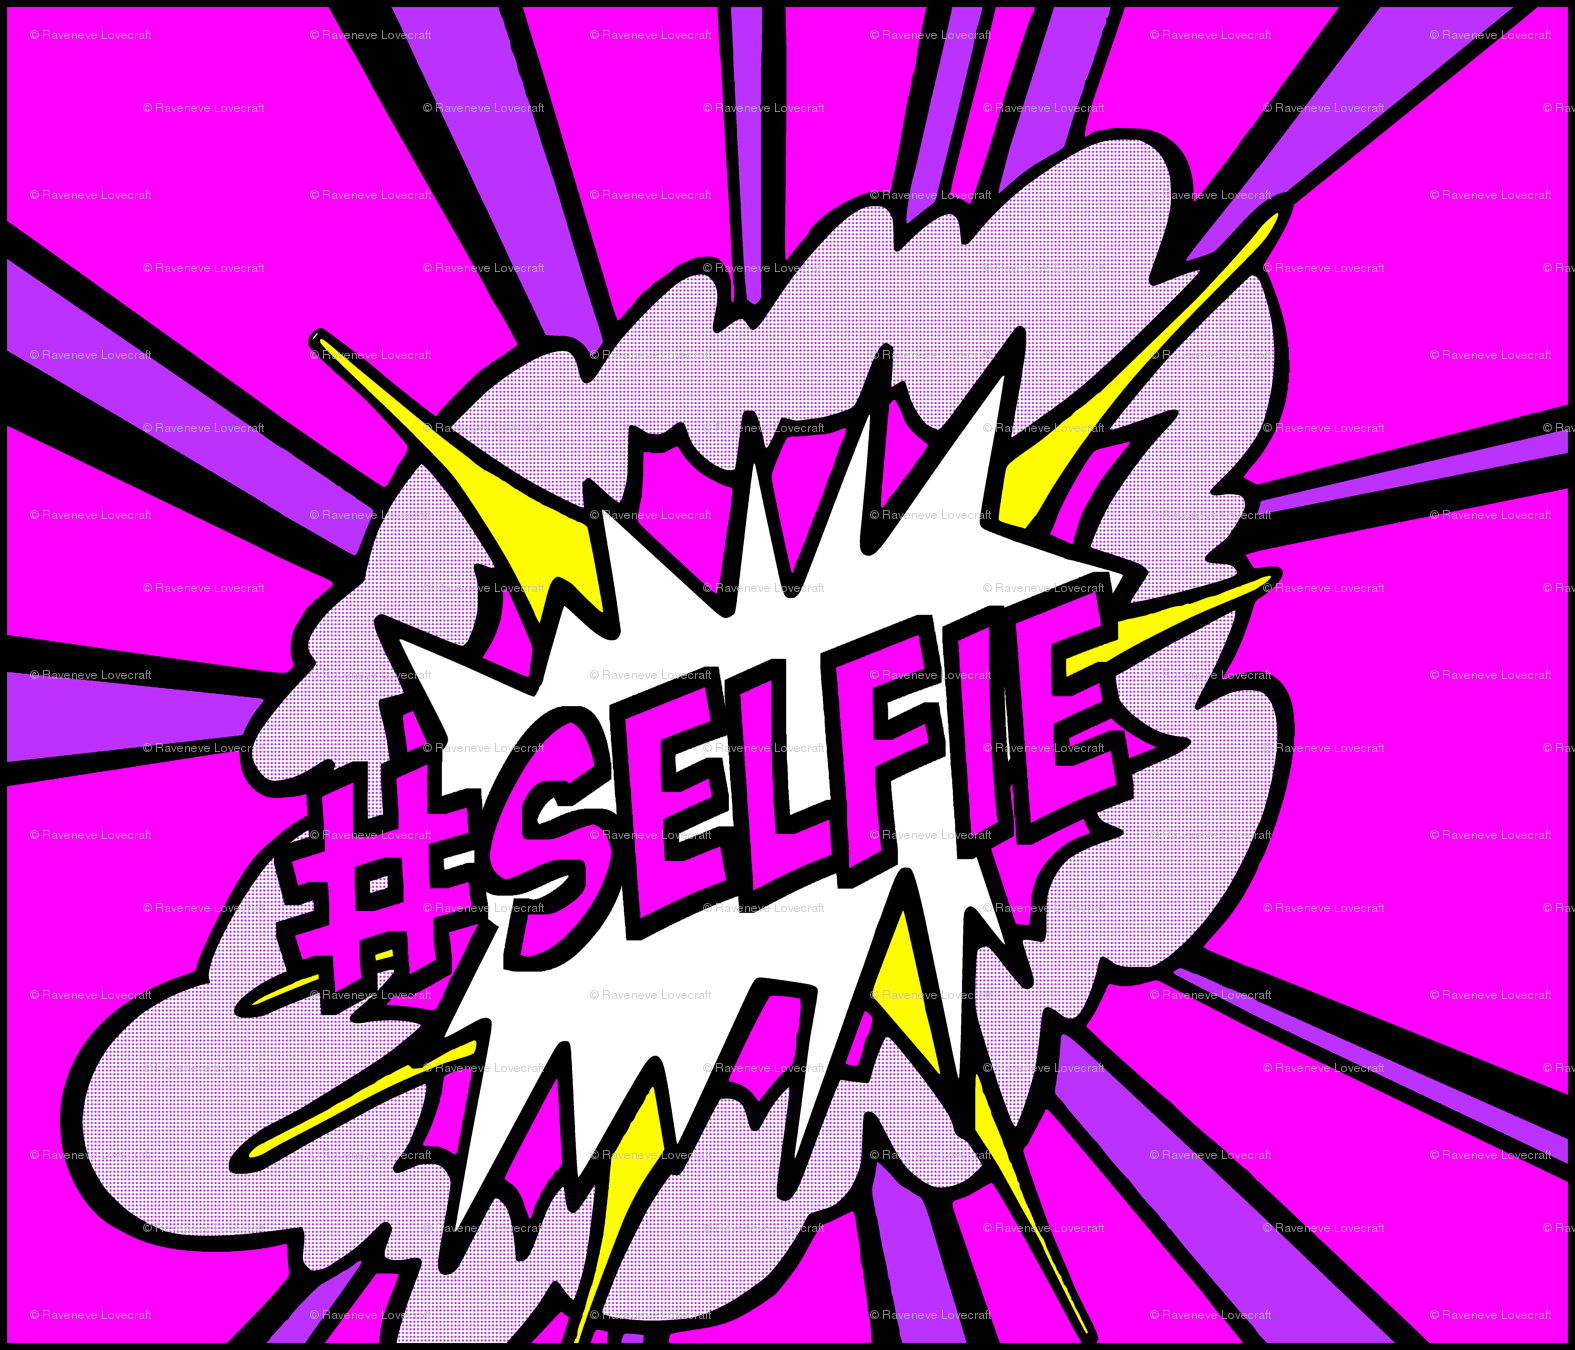 5 Pop Art Comic Words Newsweek Magazine Covers Vintage Retro Roy Lichtenstein Inspired Selfie Social Media Hashtag Instagram Twitter Facebook 25 April 1966